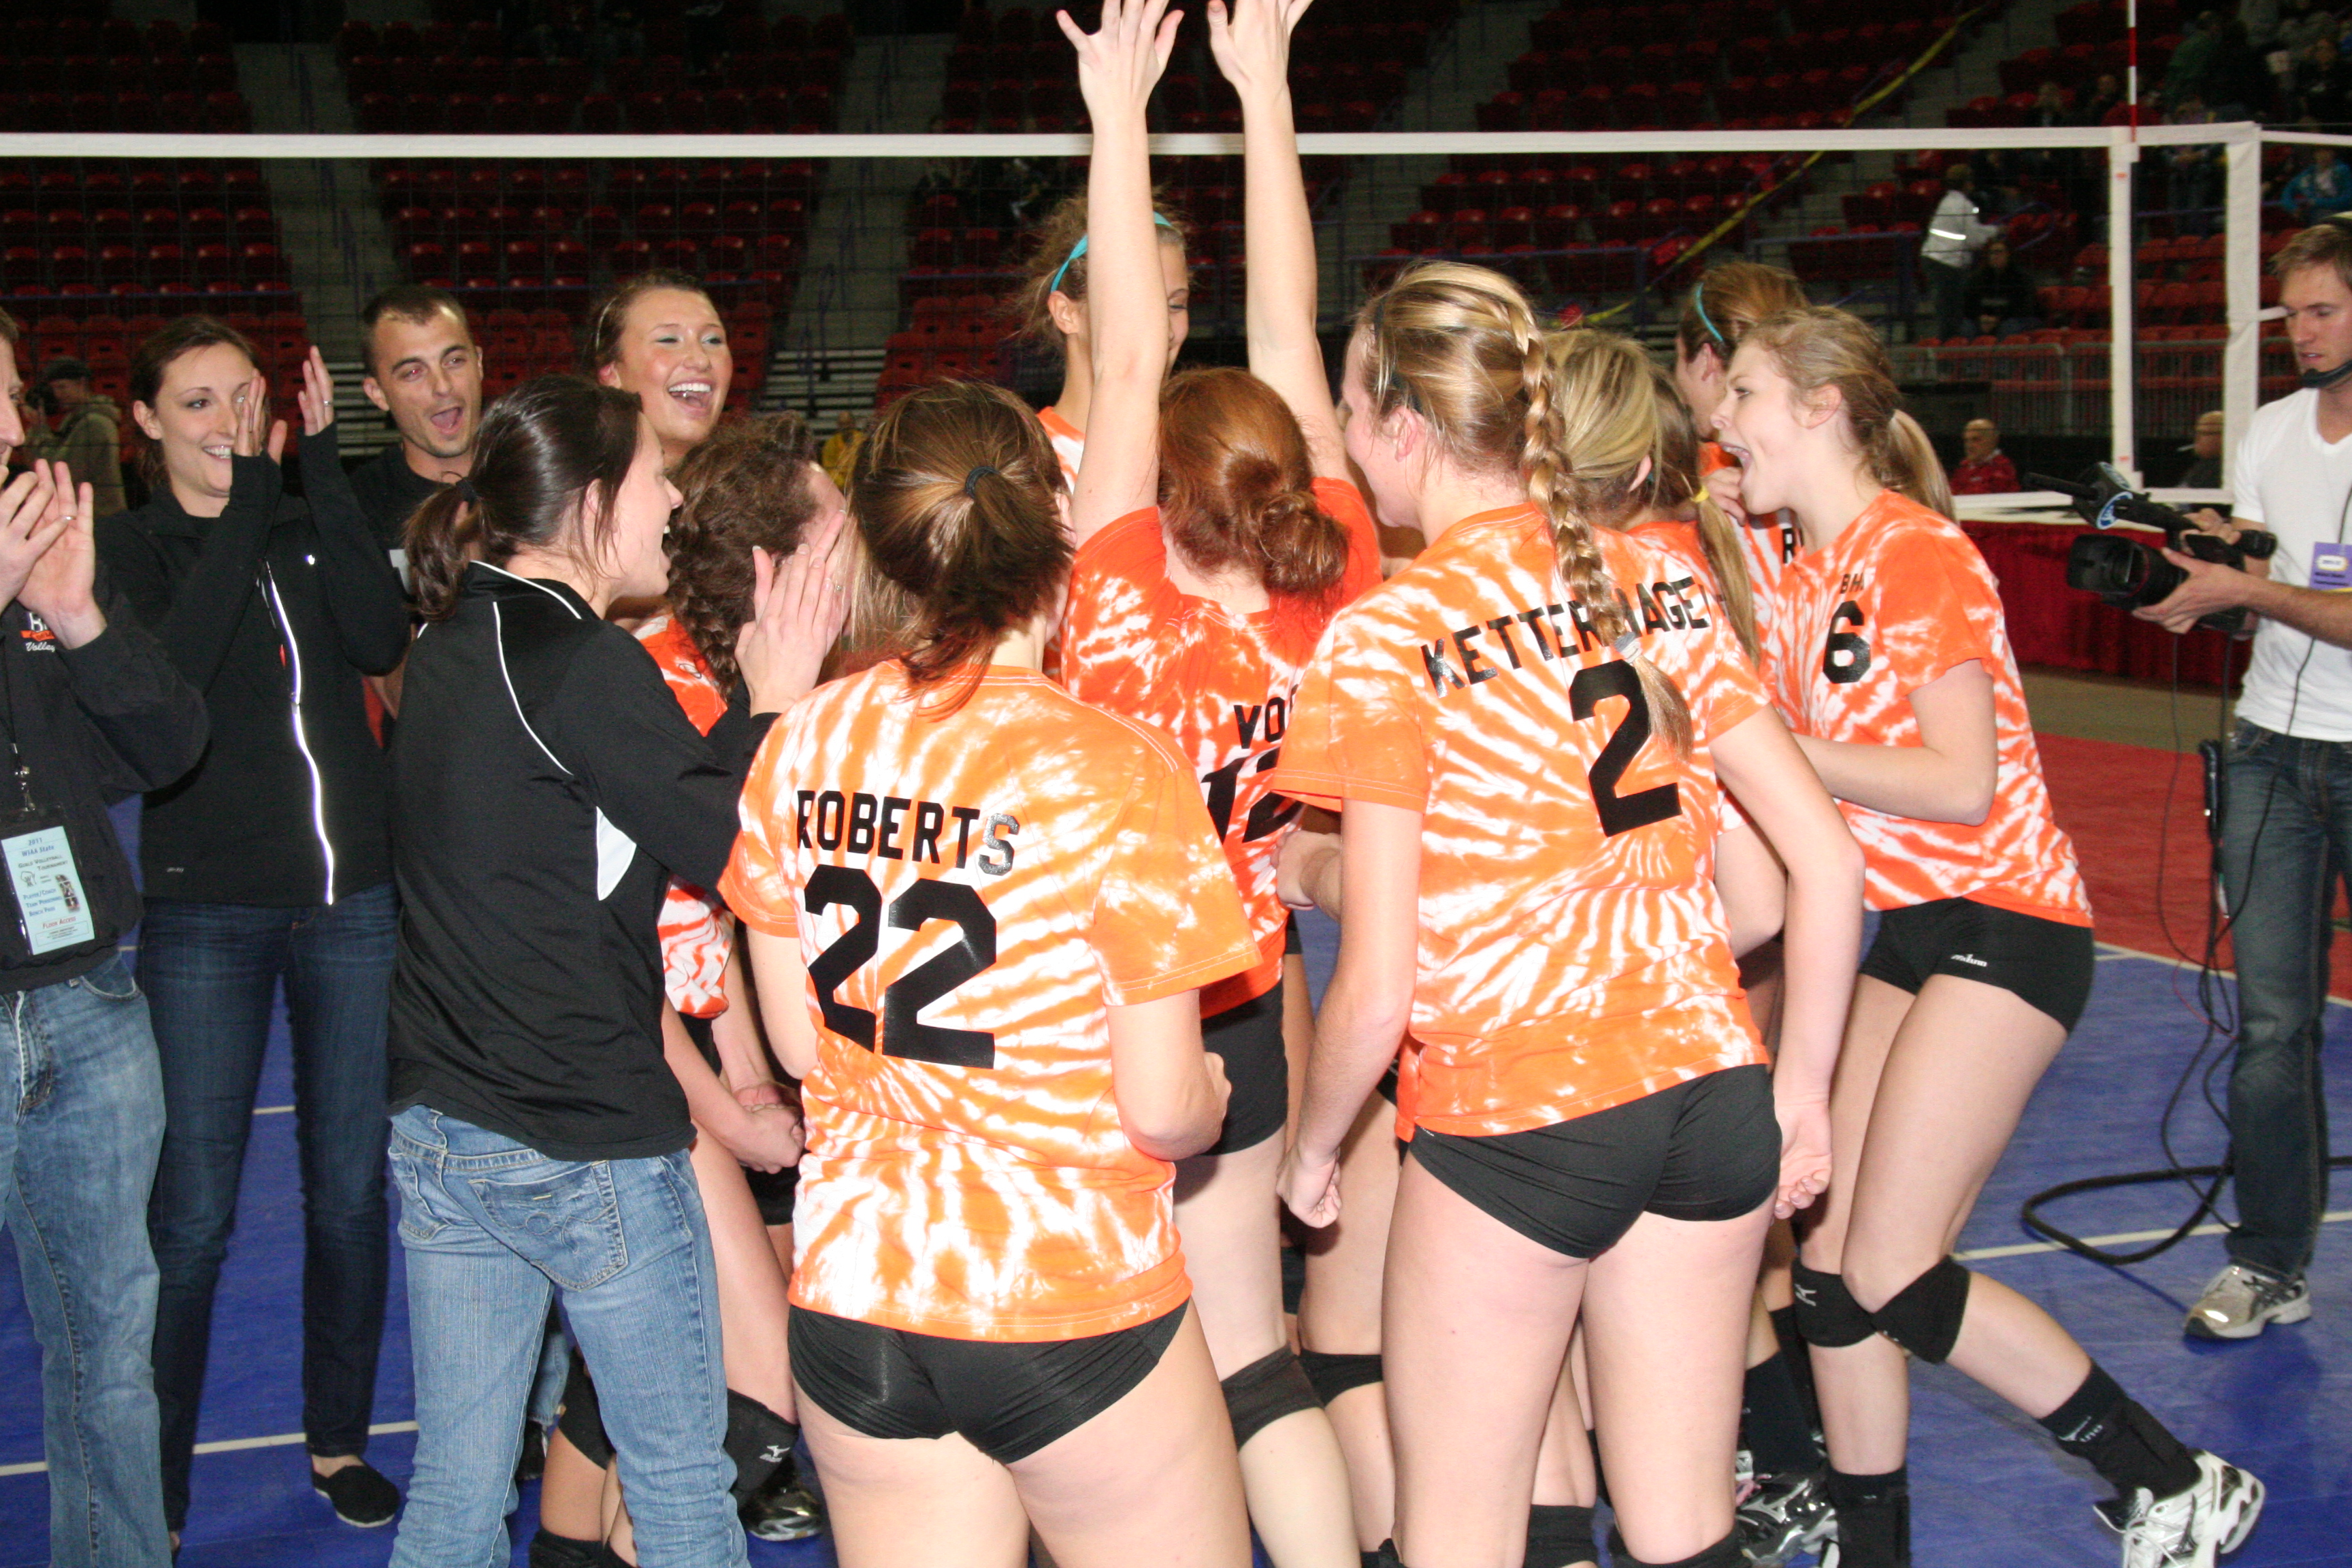 Members of the Burlington High School girls' volleyball team celebrate after winning the WIAA Division 1 state title Saturday night. (Photo by Jennifer Eisenbart)